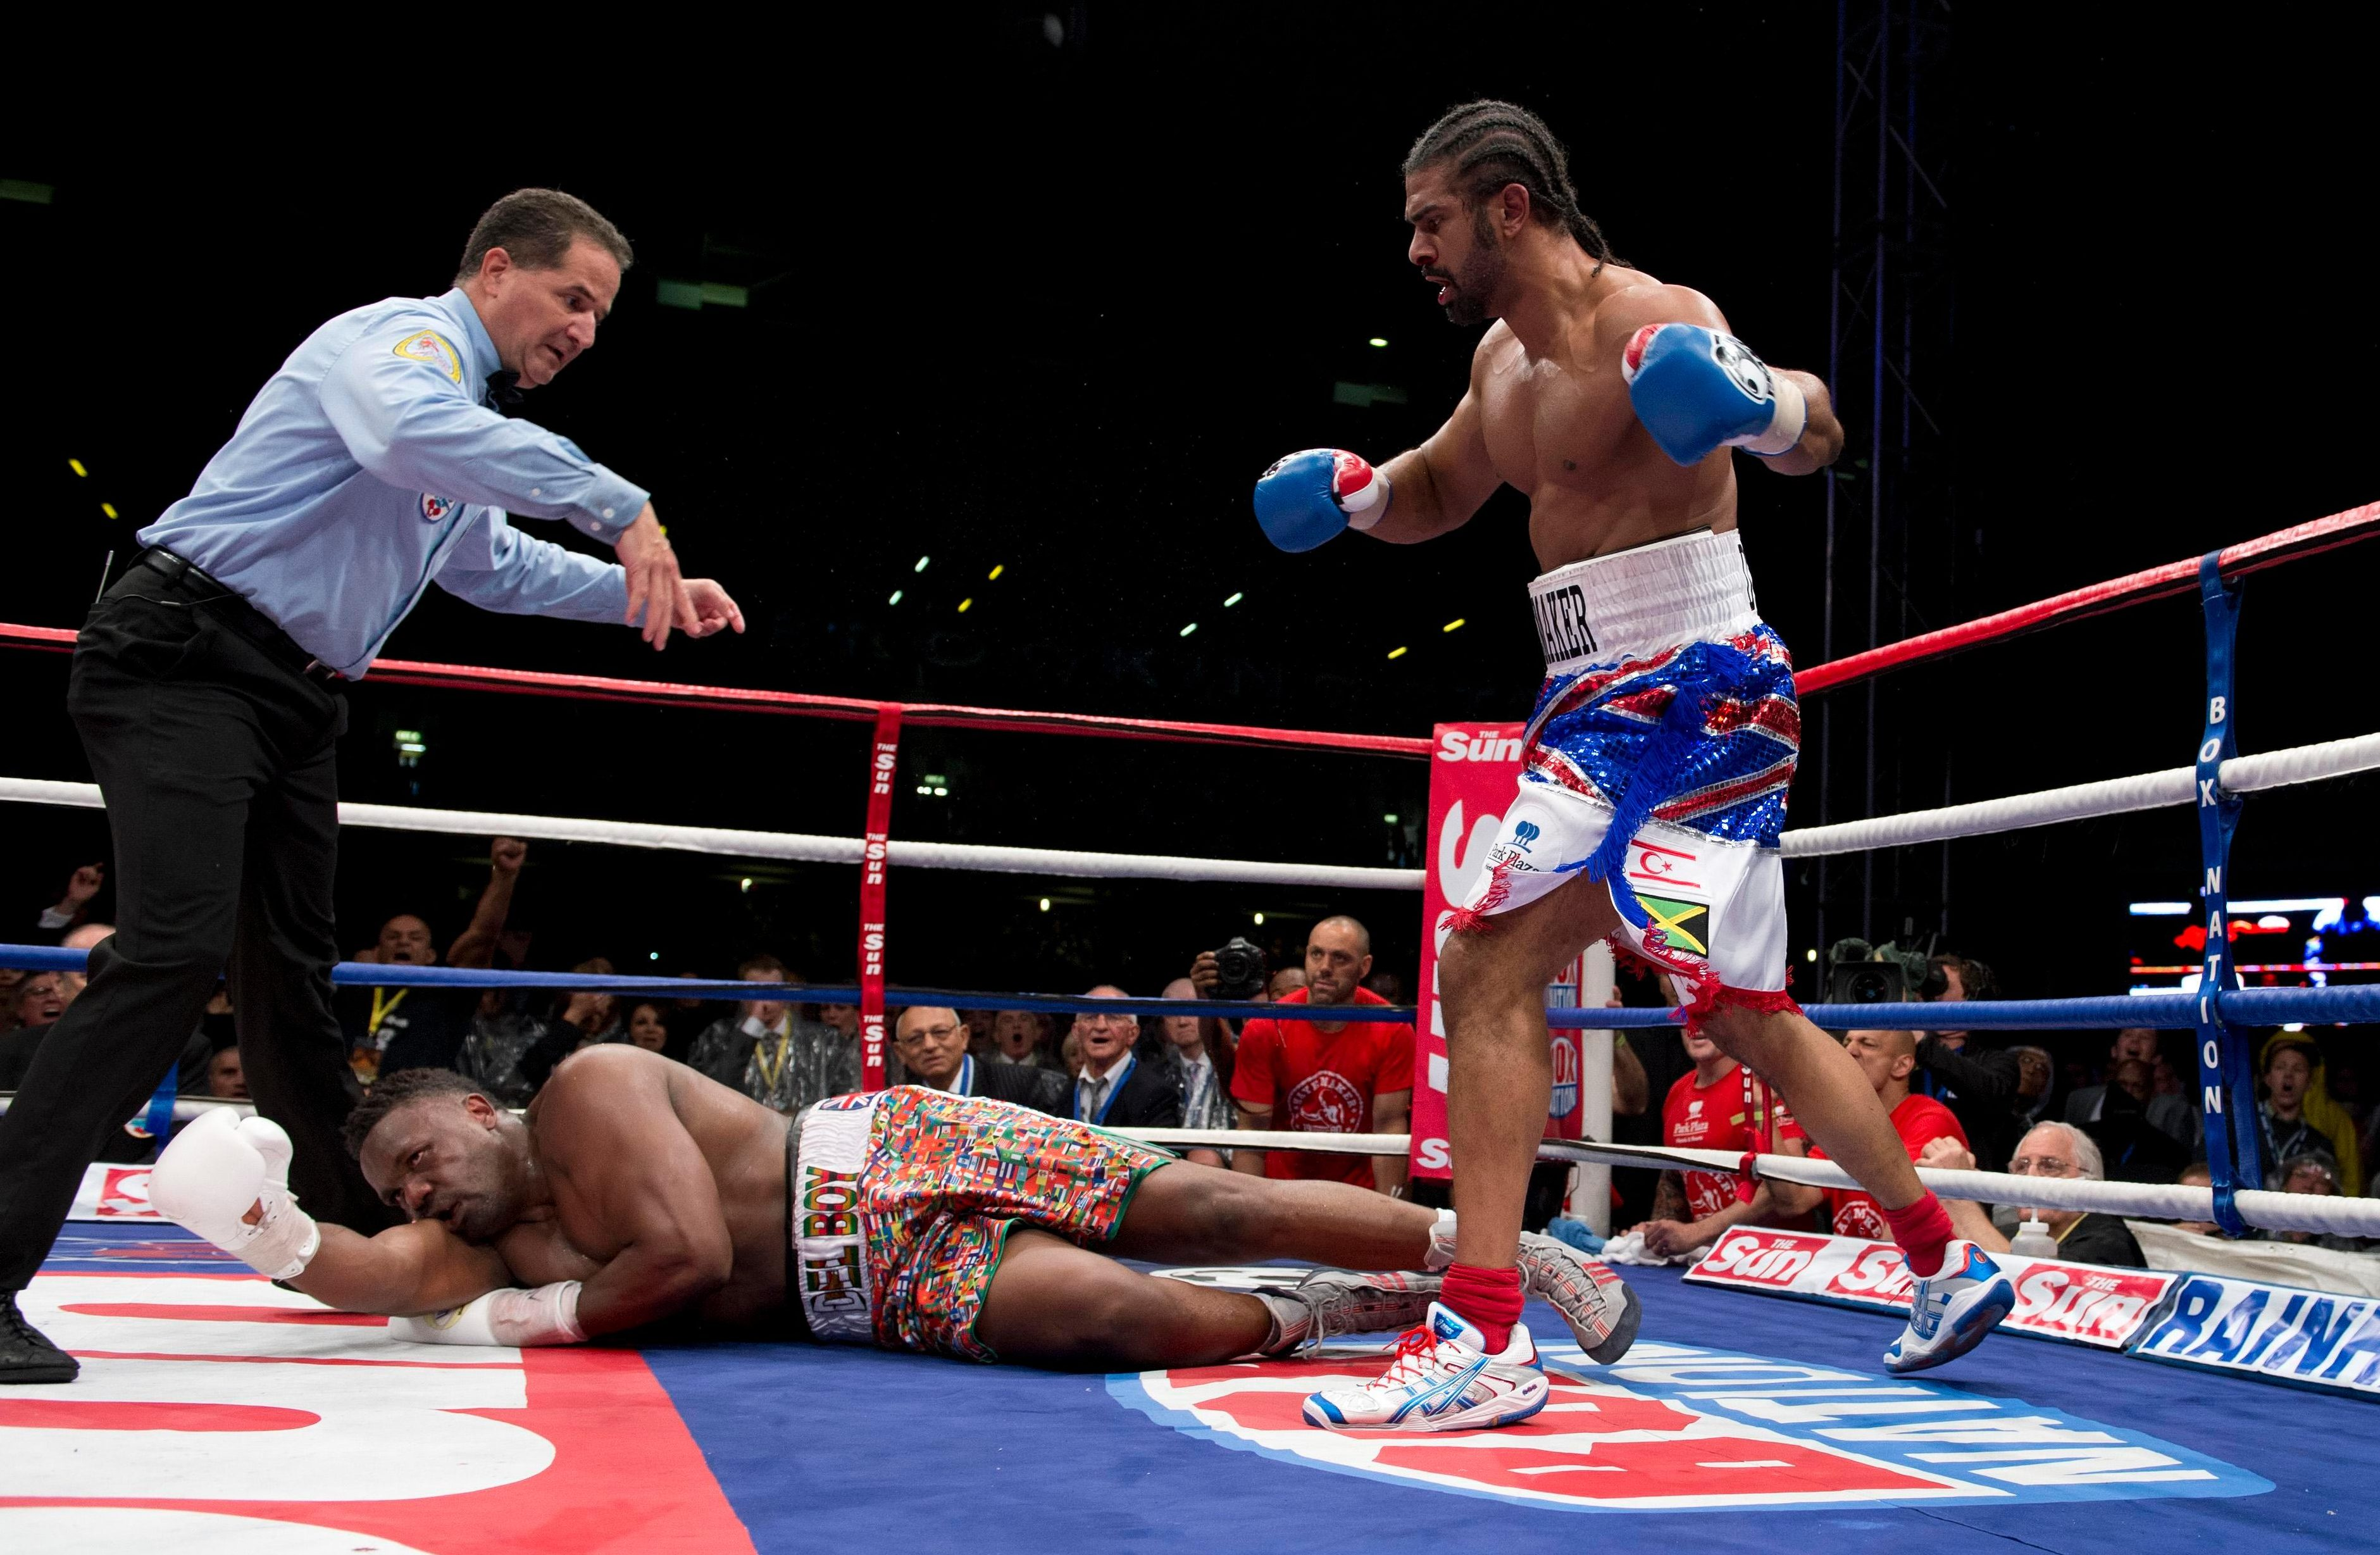 Haye stopped Chisora in the fifth round of their Upton Park bout in 2012